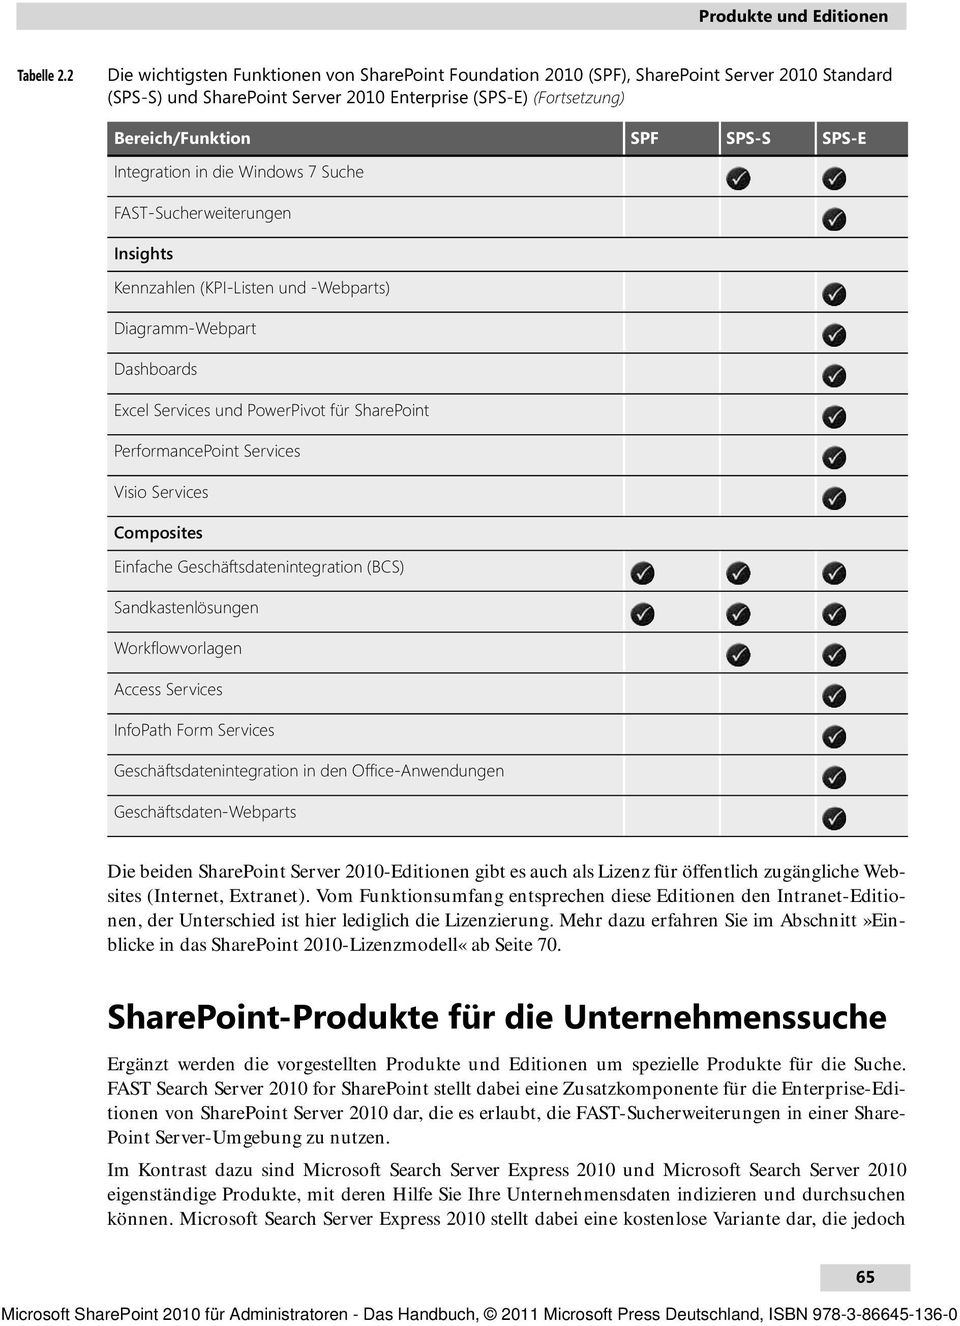 Integration in die Windows 7 Suche FAST-Sucherweiterungen Insights Kennzahlen (KPI-Listen und -Webparts) Diagramm-Webpart Dashboards Excel Services und PowerPivot für SharePoint PerformancePoint